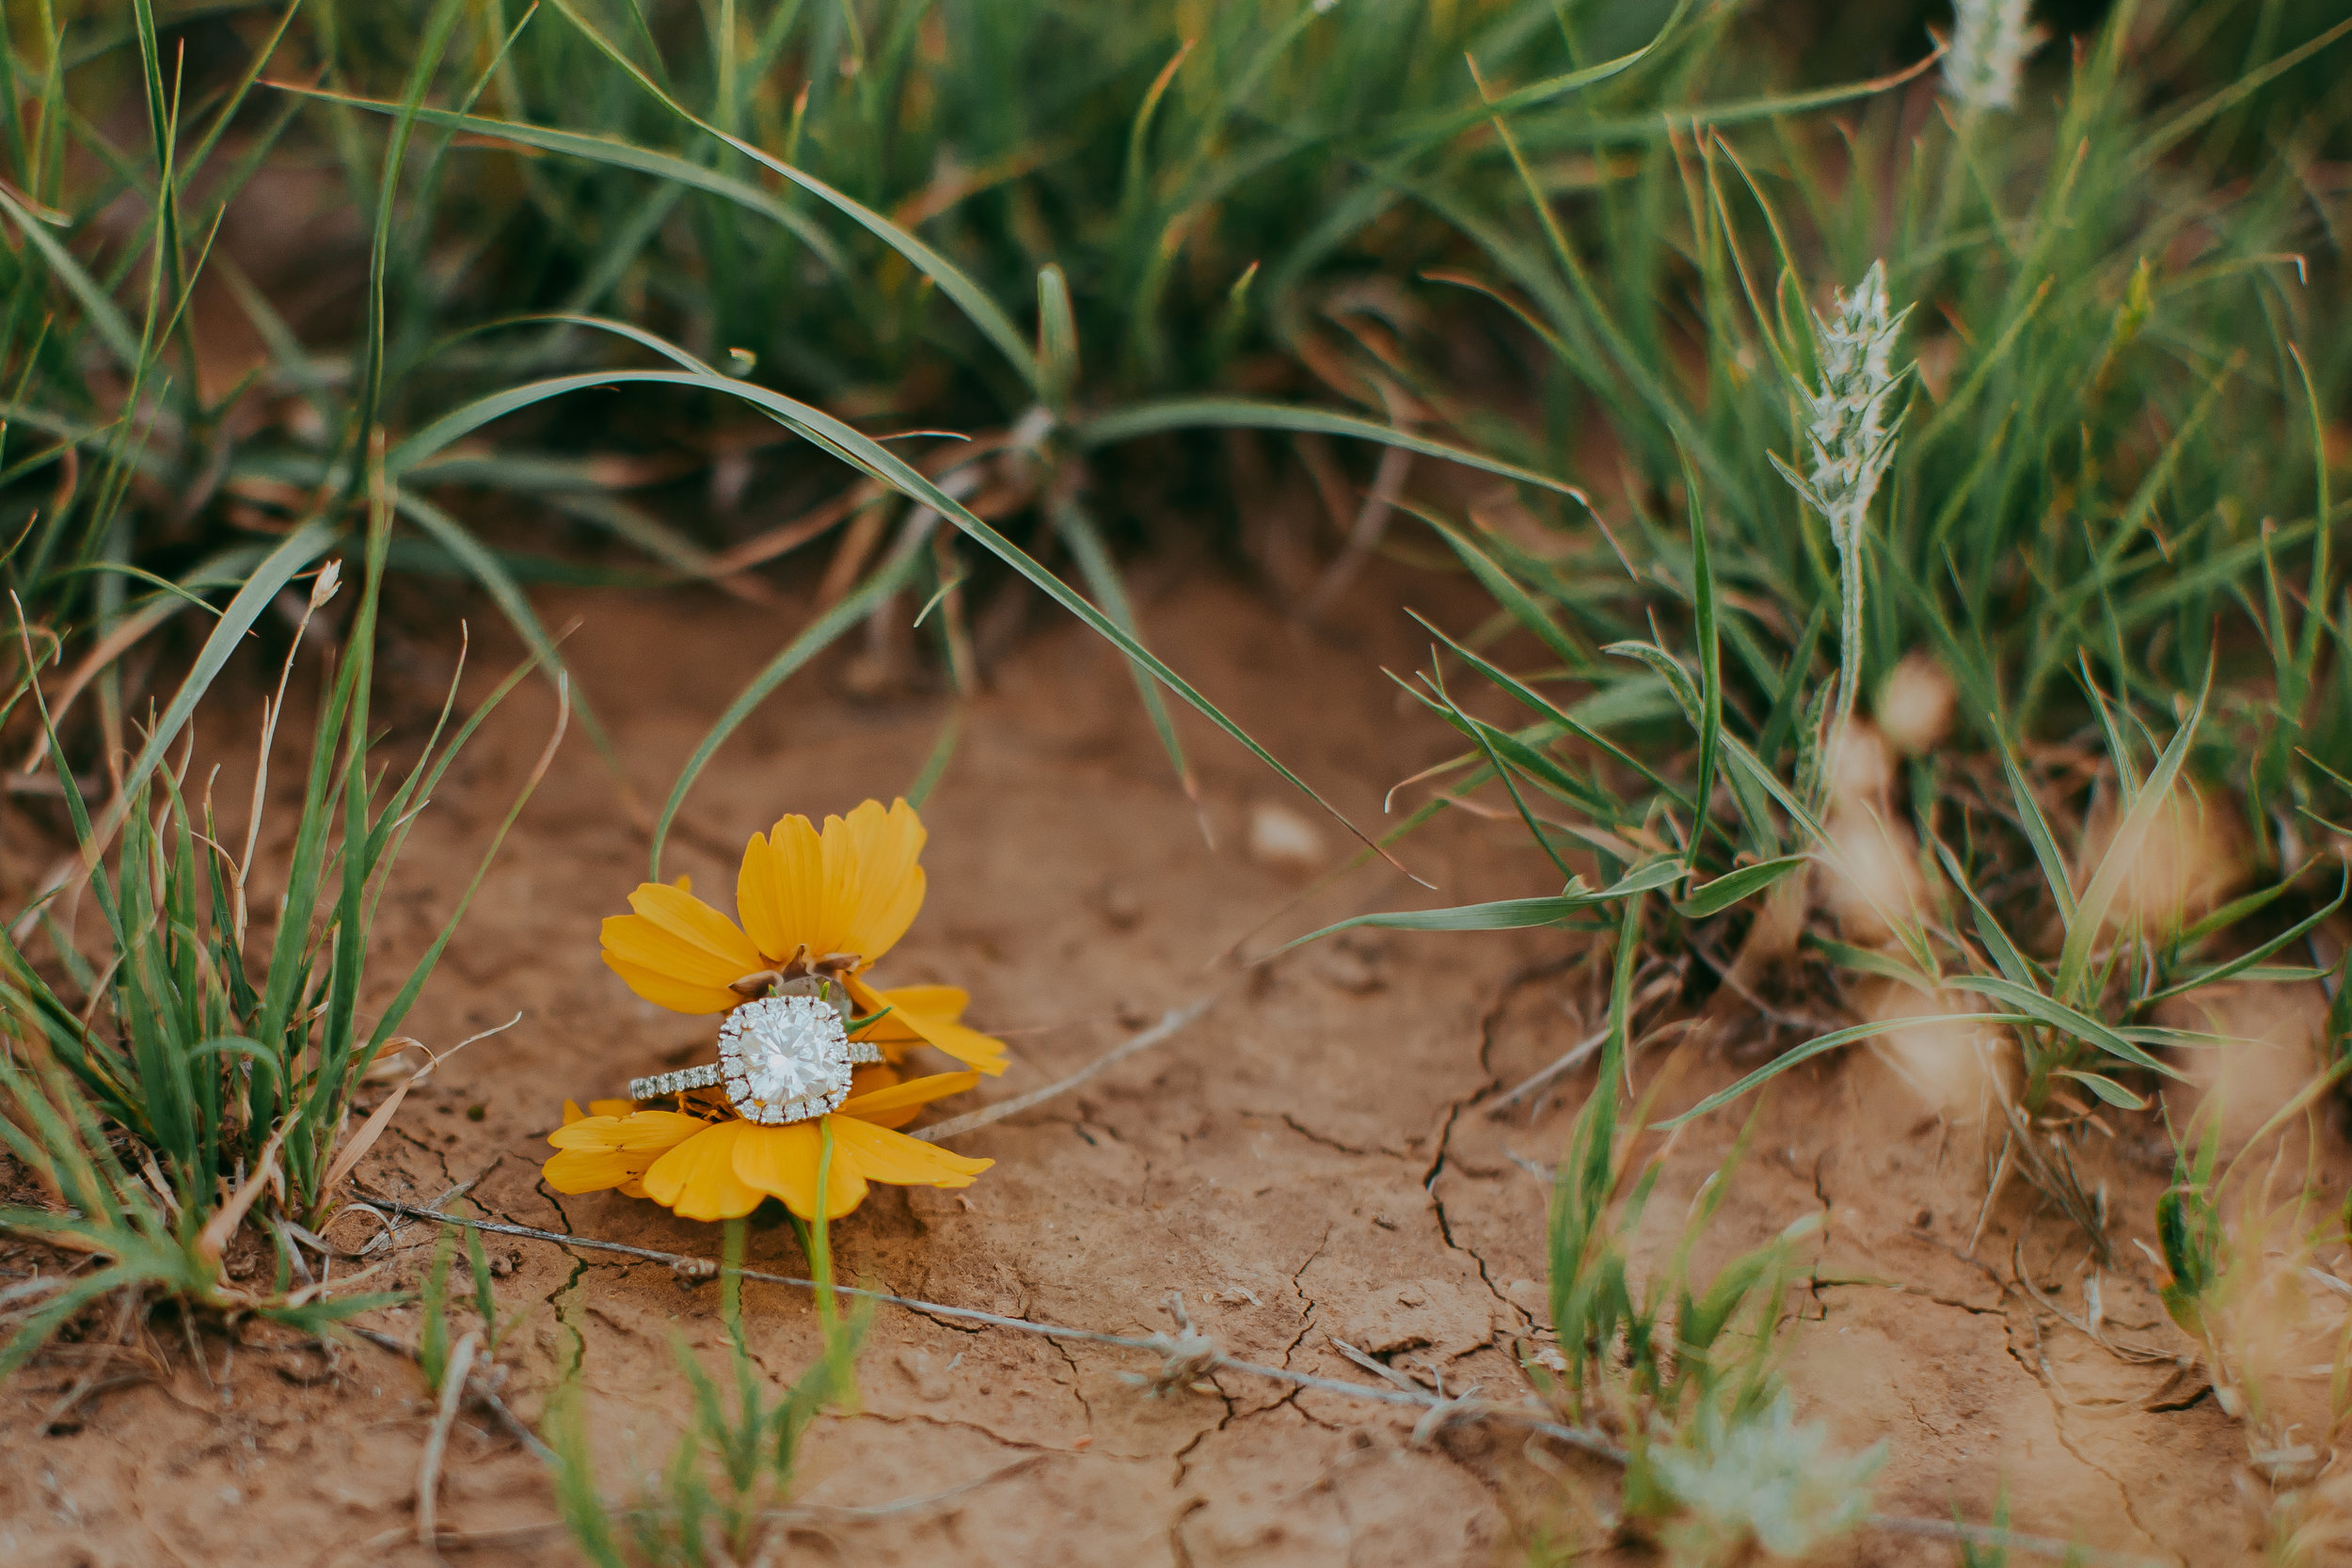 Engagement ring photograph between two yellow flowers on the ground focusing on the diamond and beauty of the ring #engagementphotos #riverfalls #engaged #personality #amarillotexas #engagementphotographer #lifestylephotos #amarillophotographer #locationchoice #texasengagementphotos #engagment #tealawardphotography #wildliferefuge